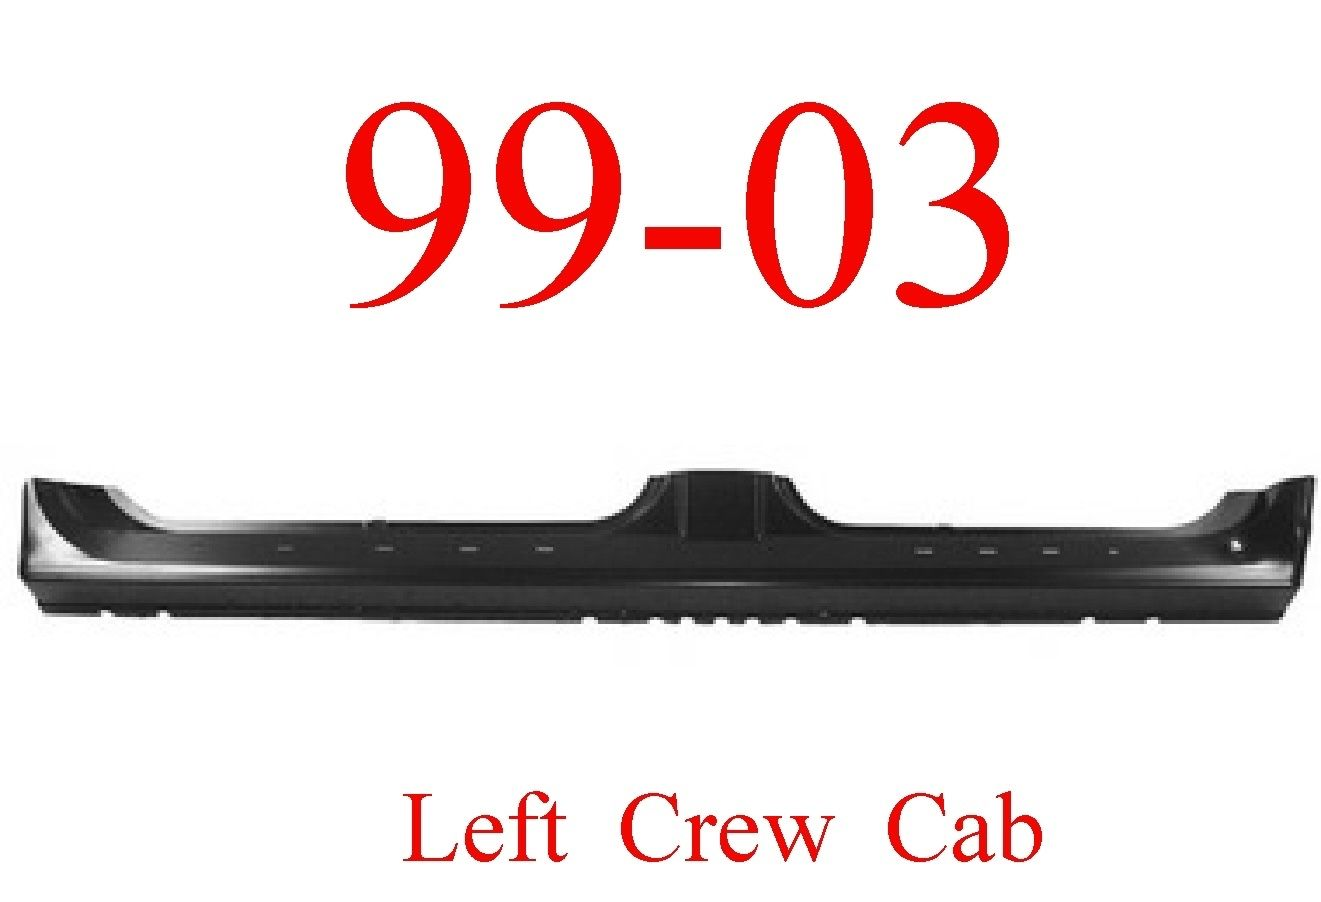 99-03 Ford Left Crew Cab Extended Rocker Panel